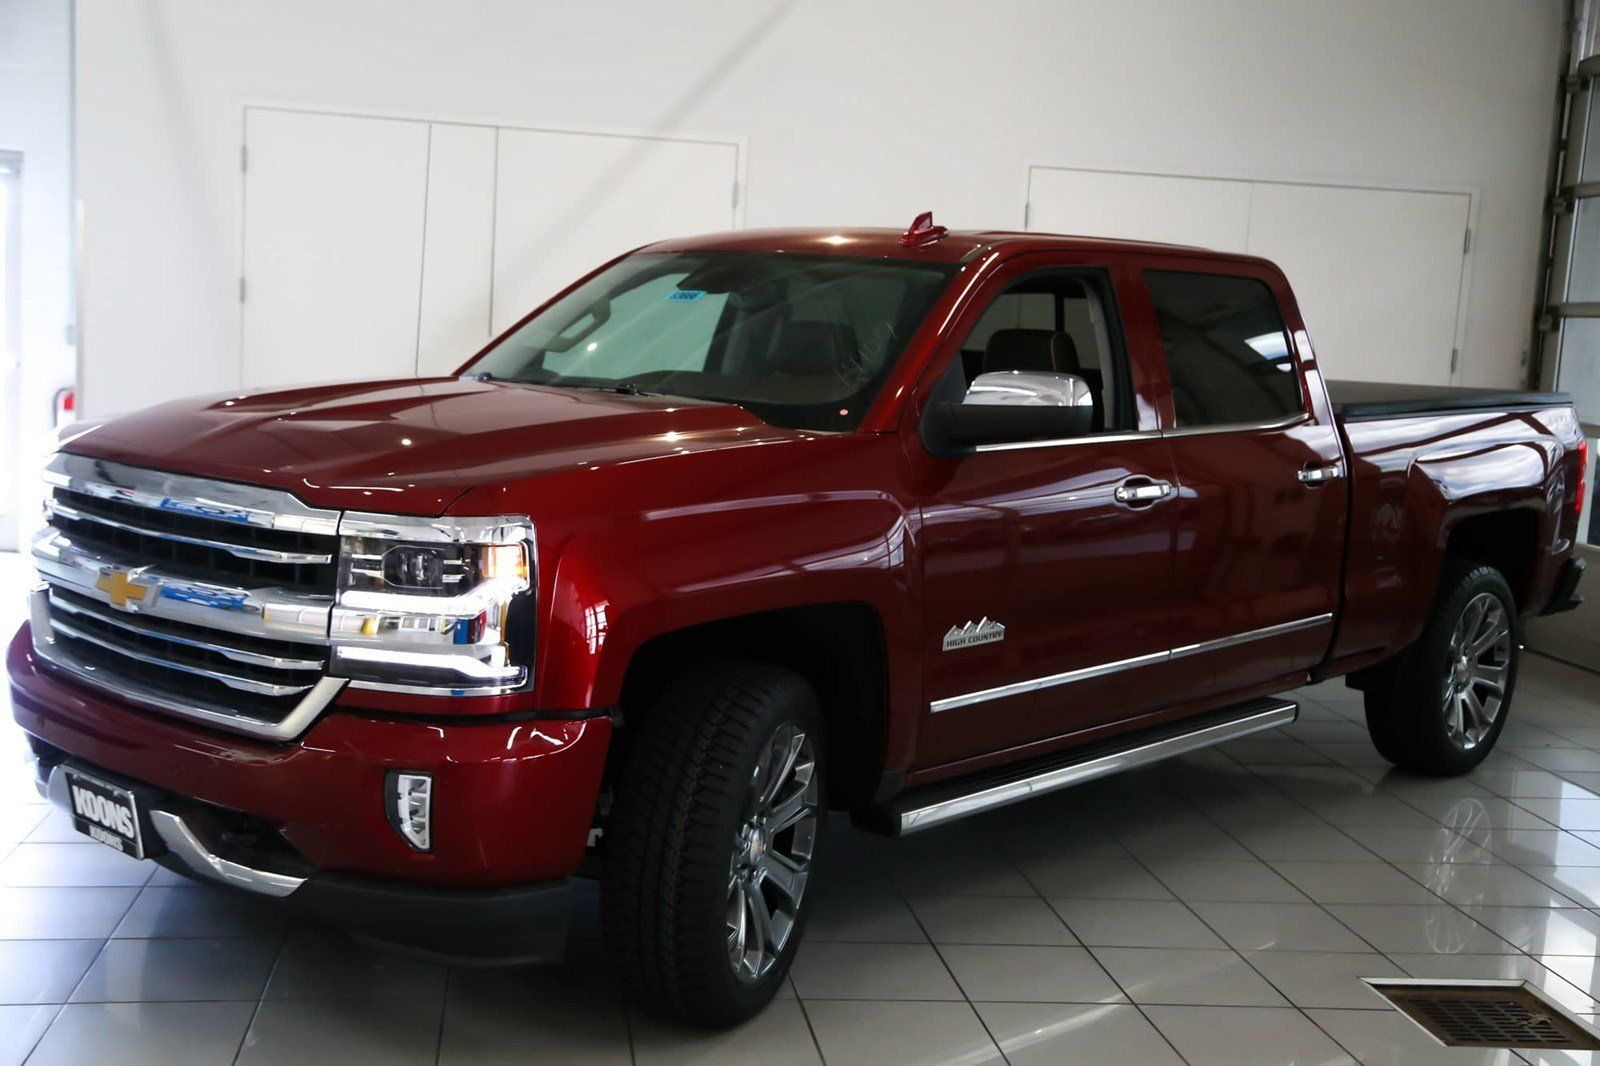 New 2018 Chevrolet Silverado 1500 4x4 Crew Cab High Country For Sale In White Marsh Md 21162 Truck Details Autotrader Chevrolet Silverado 1500 Silverado 1500